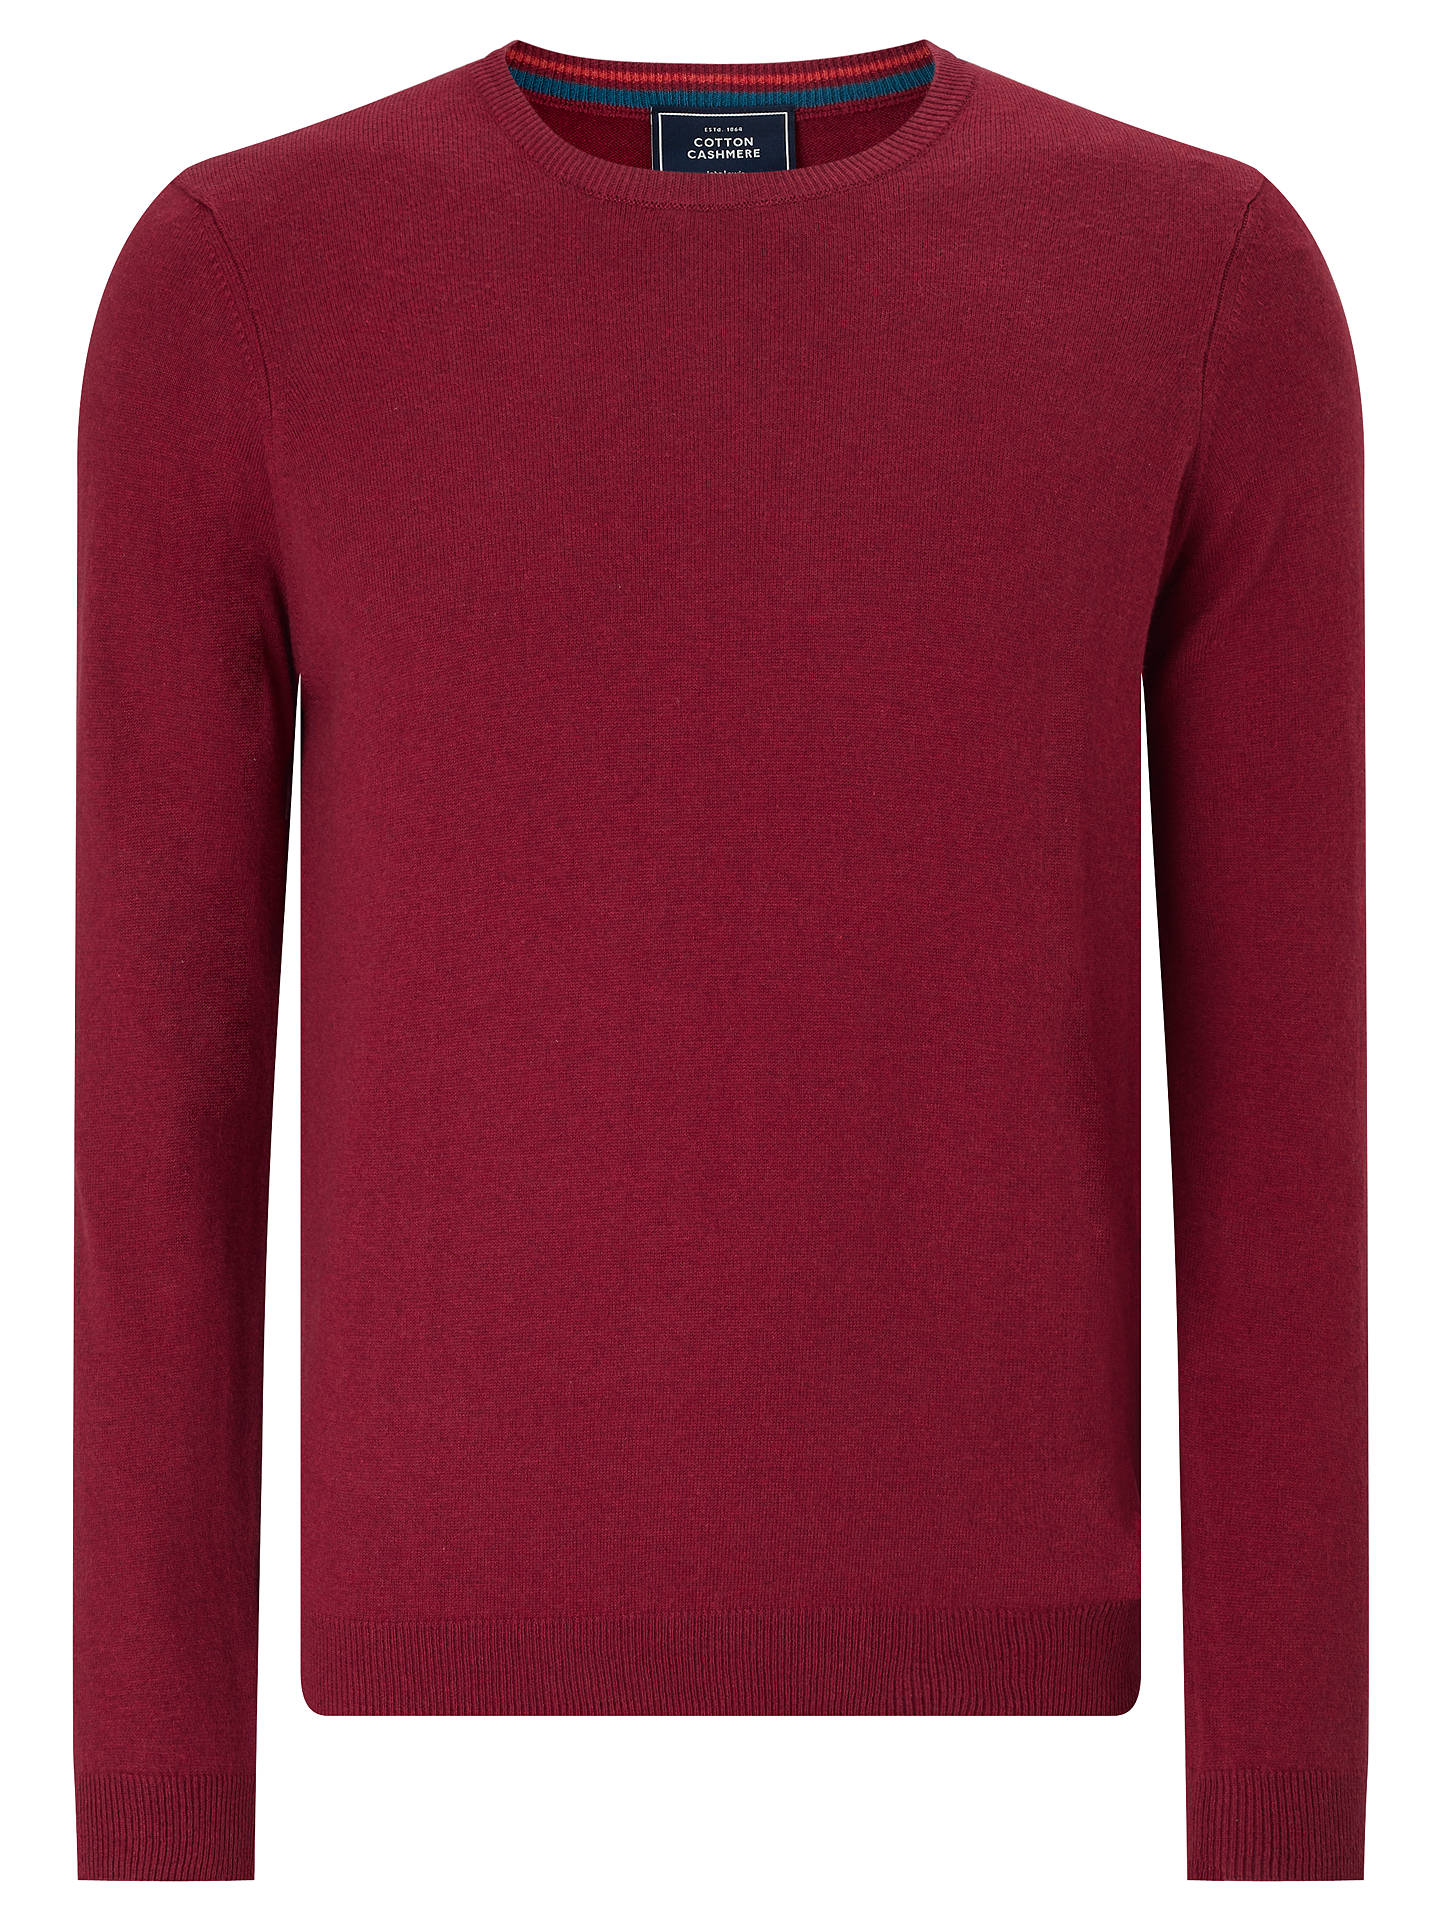 fe19fb723ad4b5 Buy John Lewis Cotton Cashmere Crew Neck Jumper, Red, S Online at johnlewis.